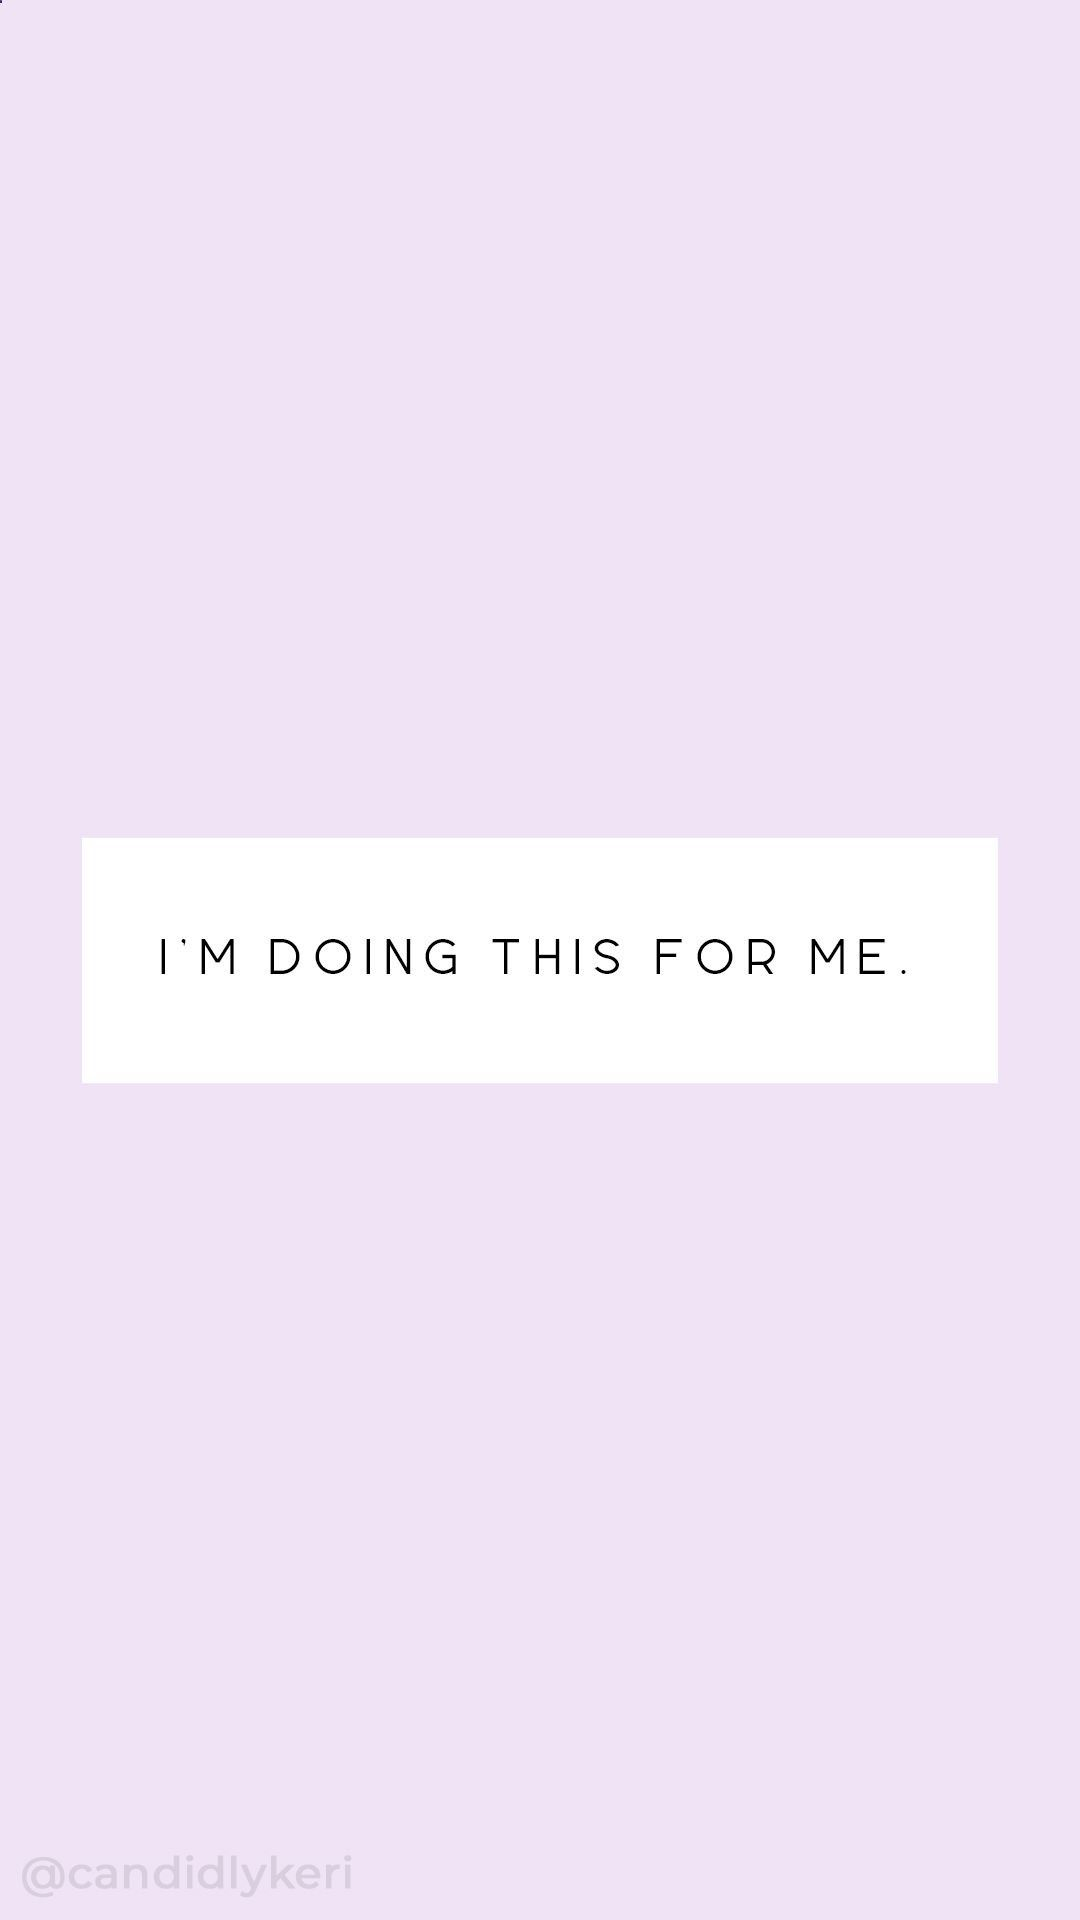 Im Doing This For Me Typography Inspirational Motivational Quote Background  Wallpaper You Can Download For Free